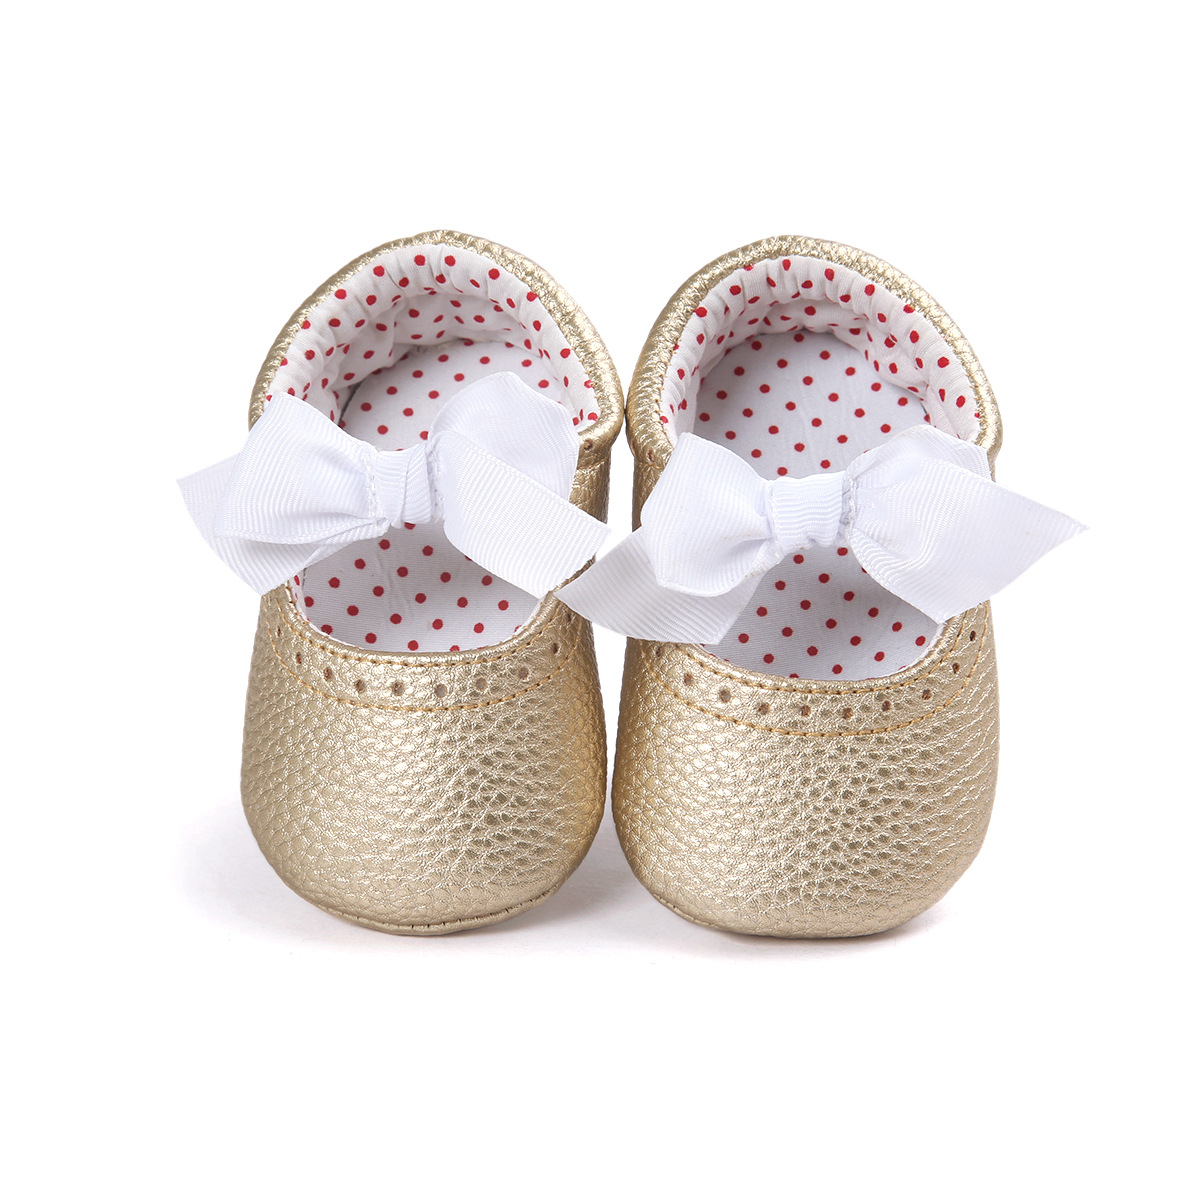 New Arrival Gold Sweet Girl font b Baby b font Shoes Leather Bowknot Newborn Infants Moccasins